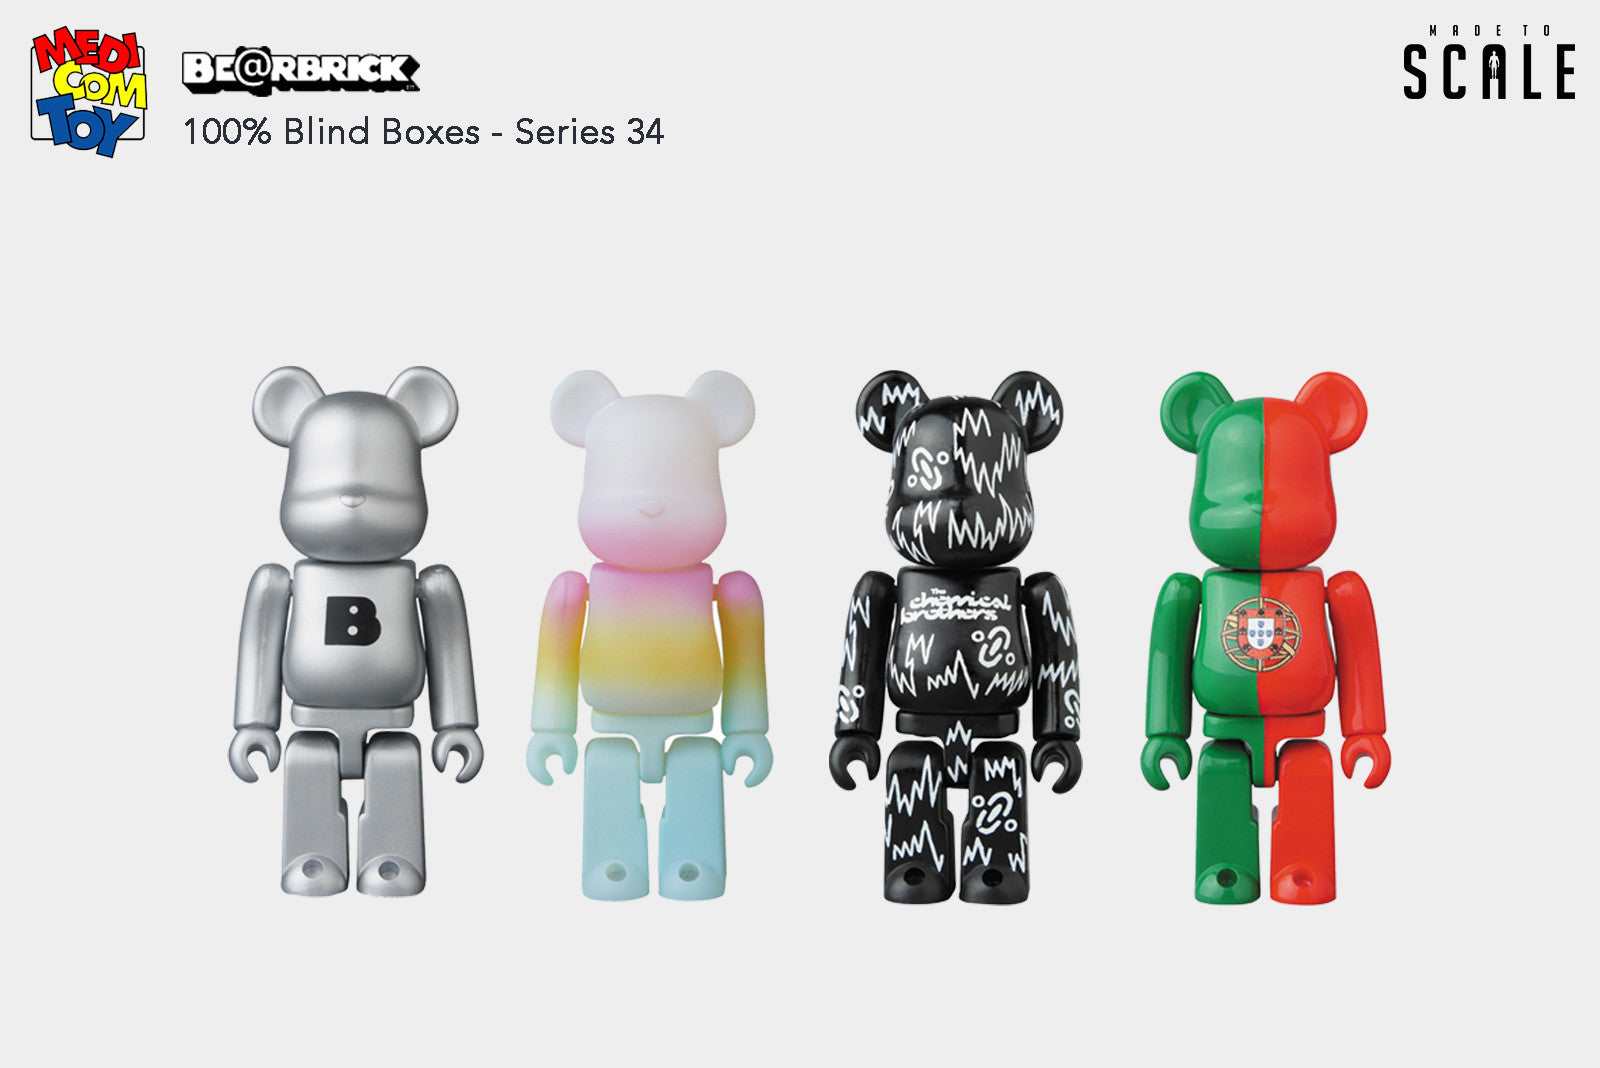 Medicom Toy Be@rbrick - Blind Boxes 100% Bearbrick Series 34 Mini Figures - Release Date: July 2017